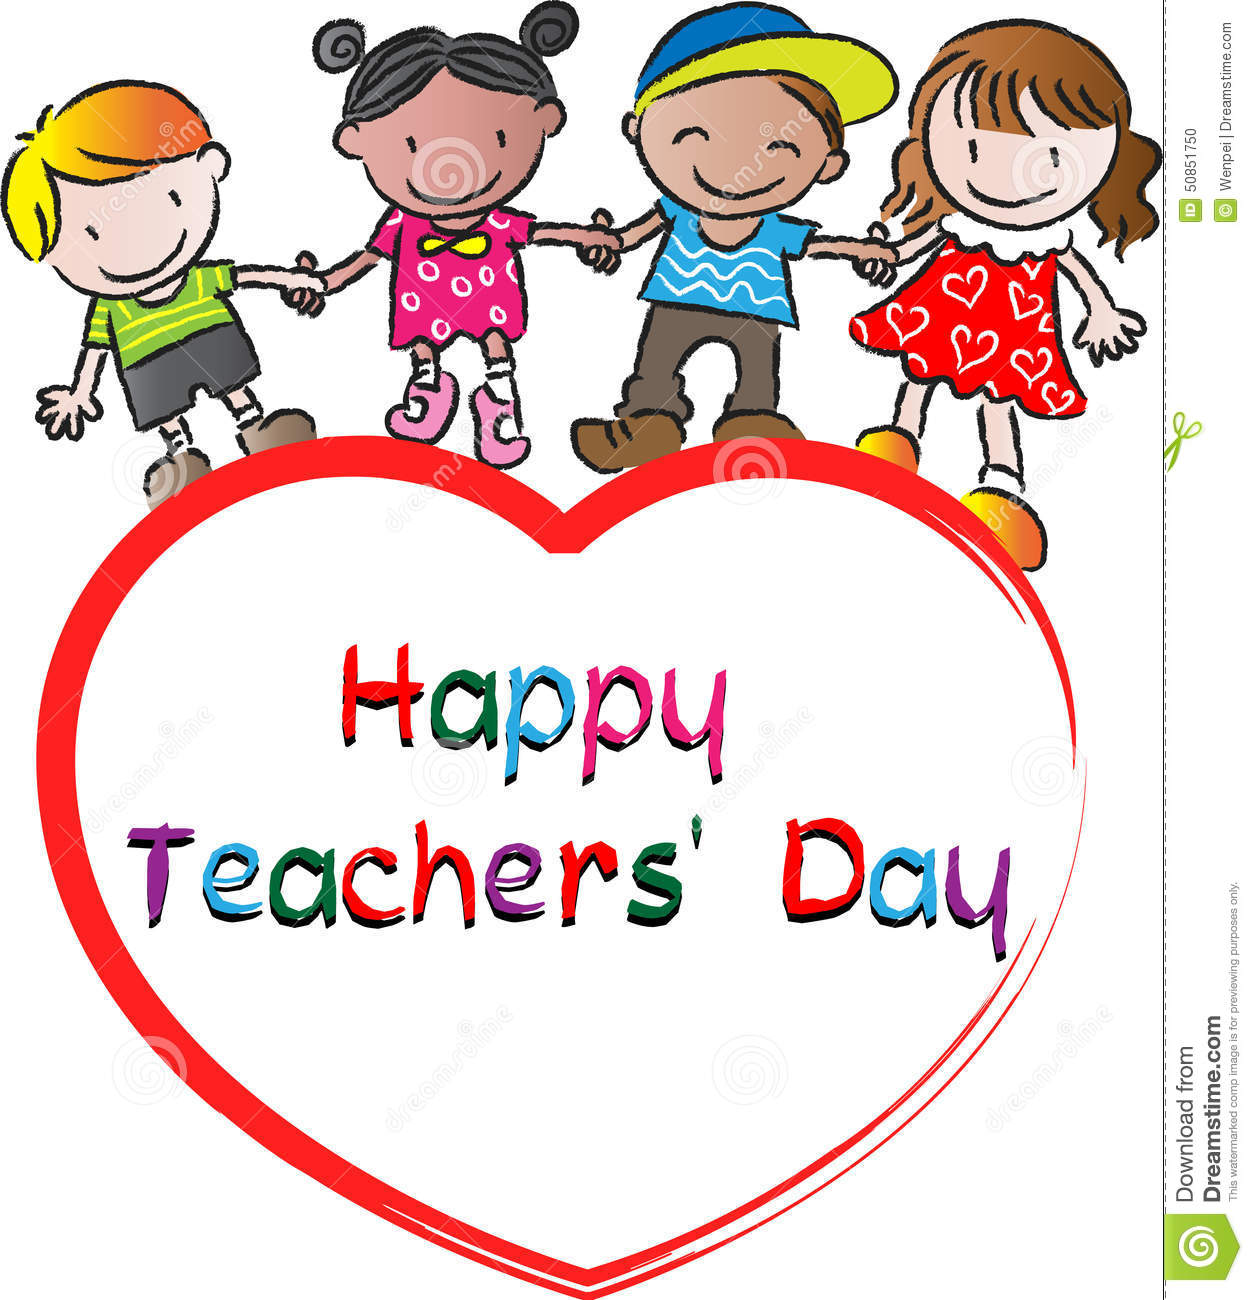 Happy Teachers Day Stock Illustration  Image: 50851750